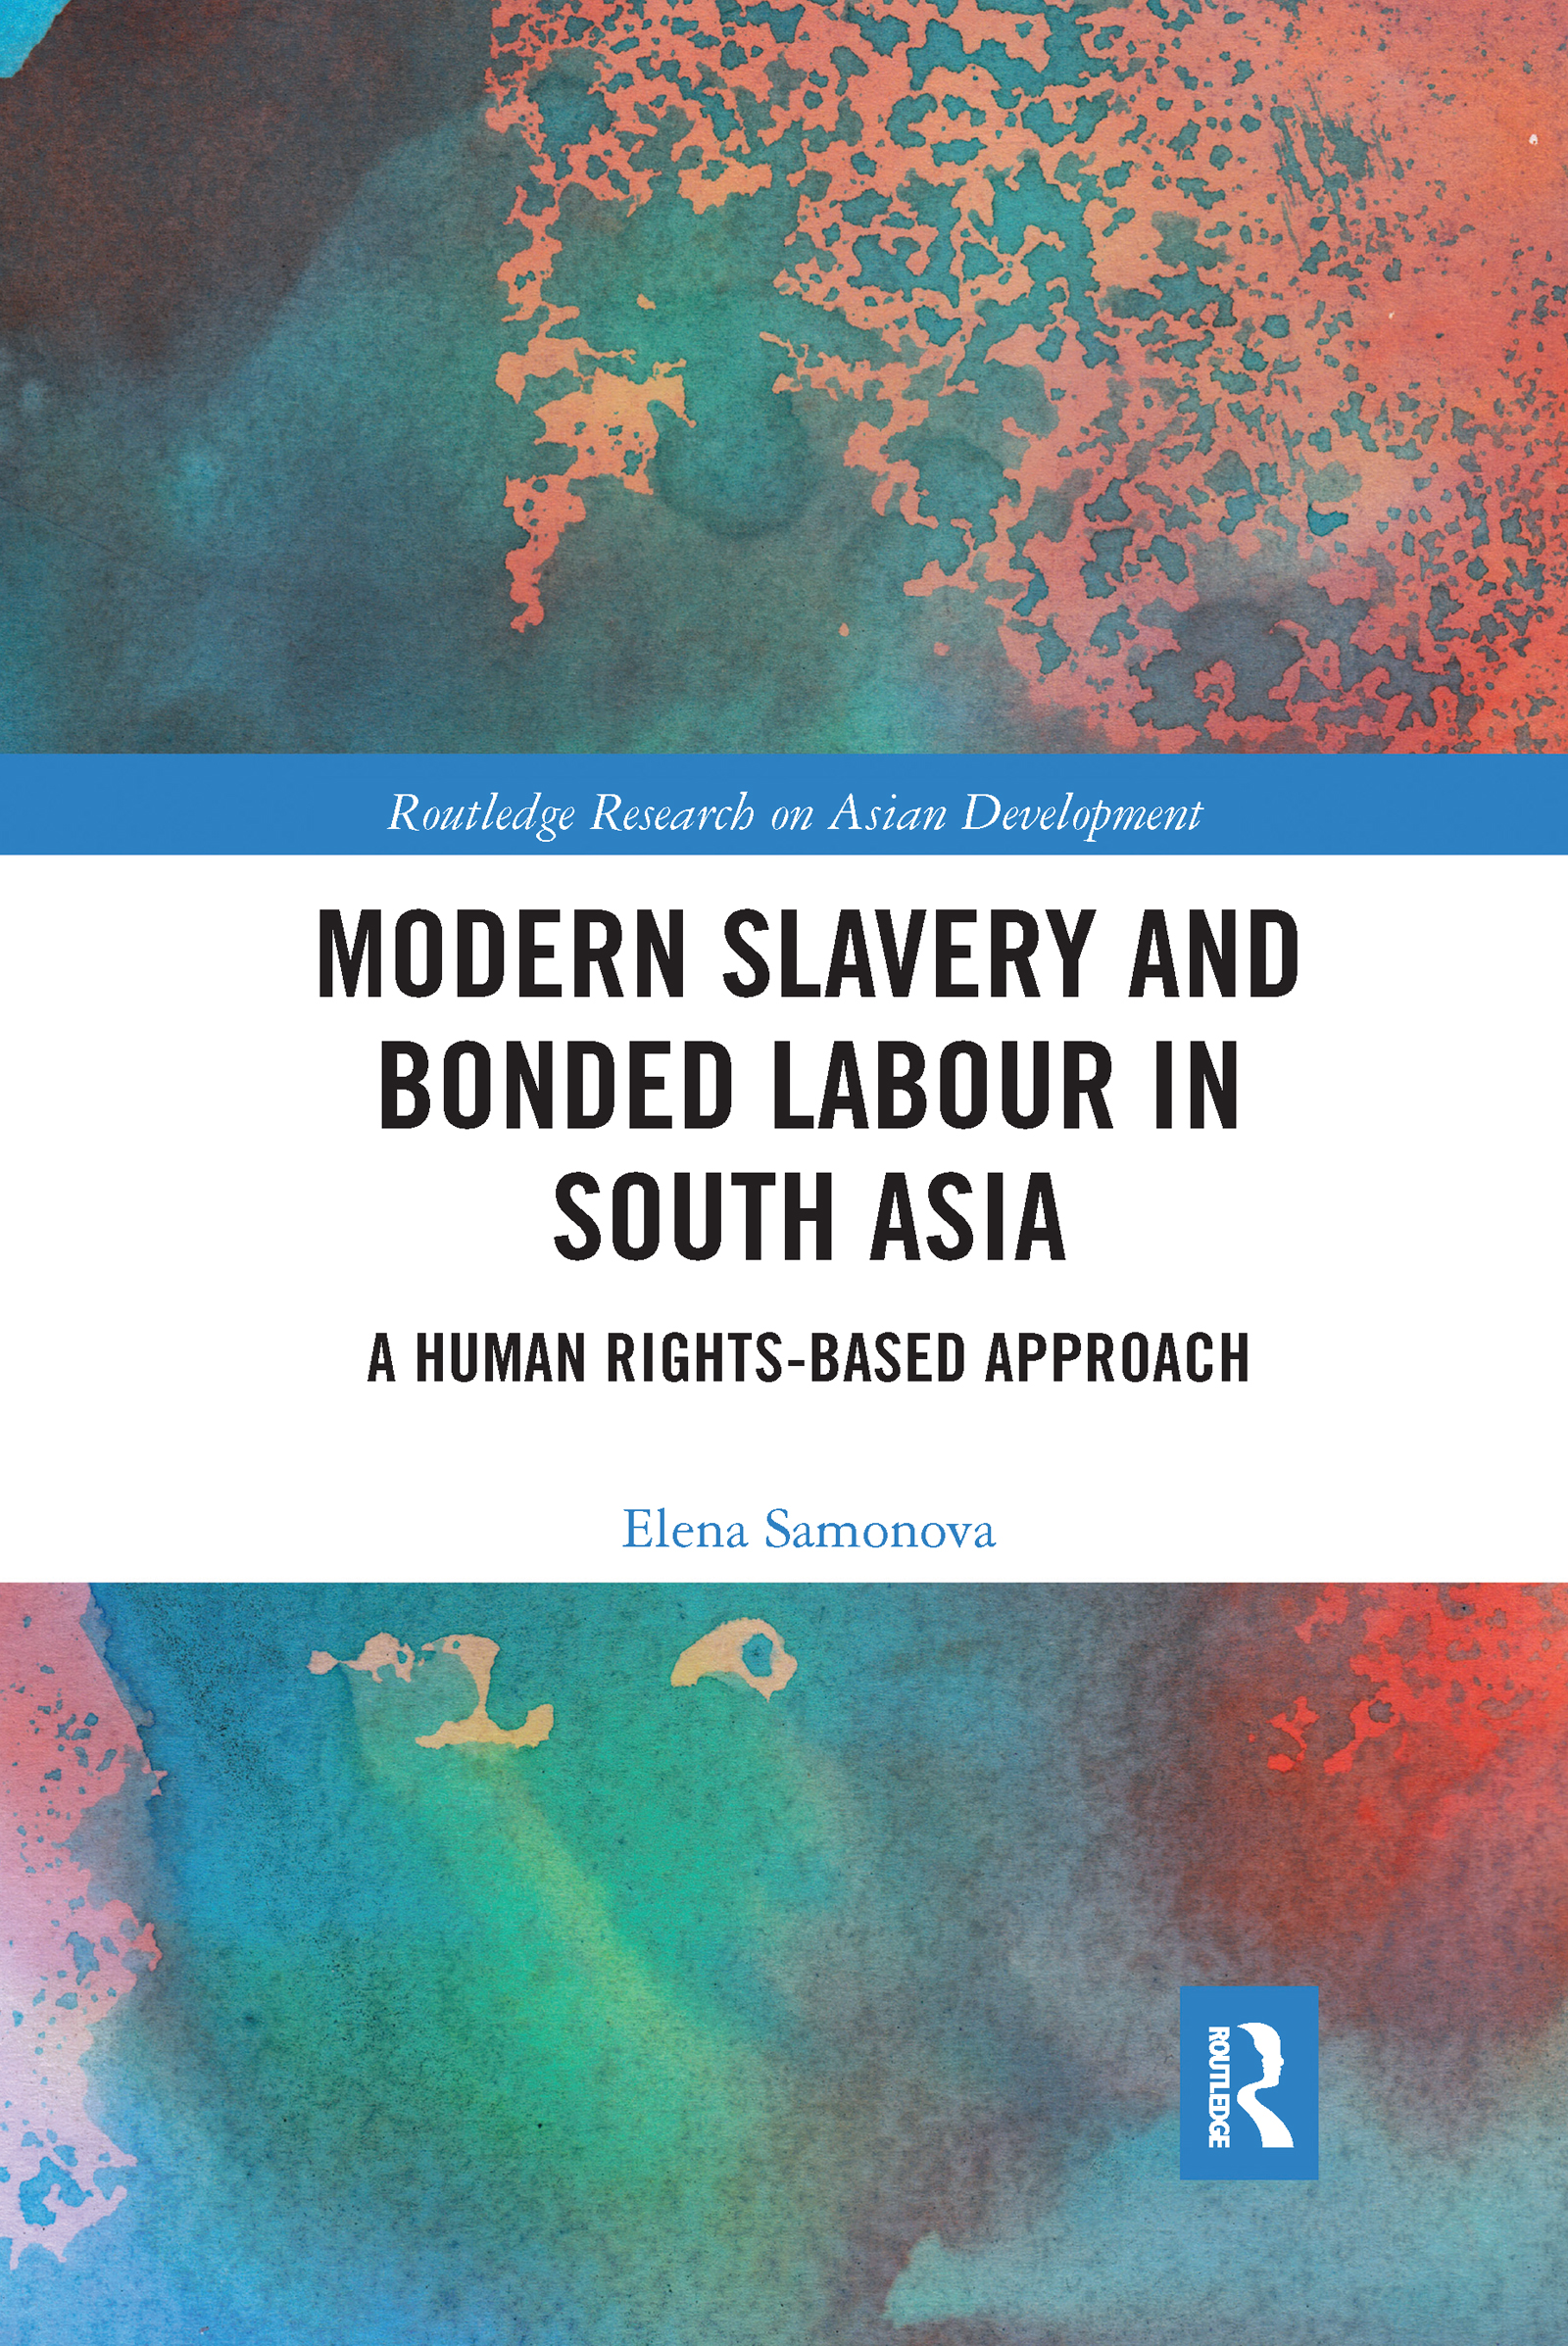 Modern Slavery and Bonded Labour in South Asia